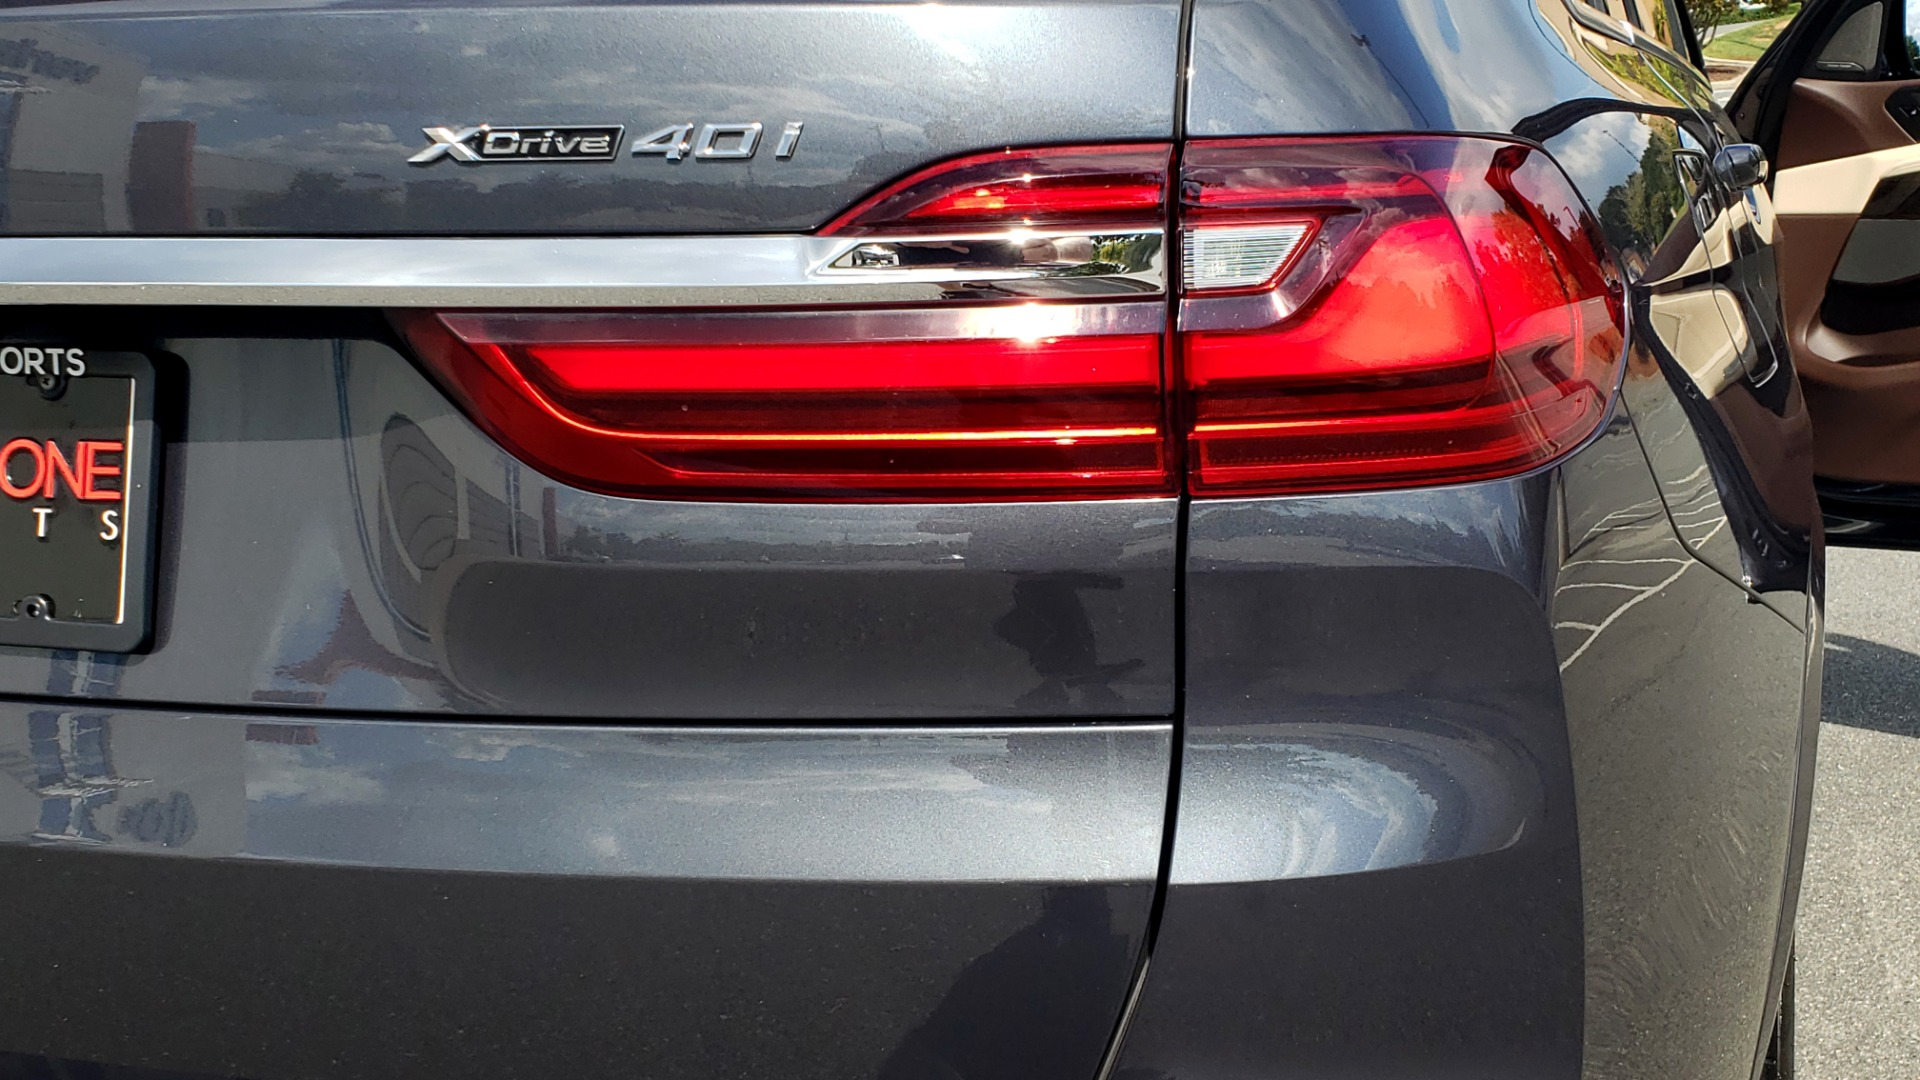 Used 2019 BMW X7 XDRIVE40I PREMIUM / LUXURY / COLD WEATHER / PARK ASST / PANORAMIC SKY / TOW for sale $75,999 at Formula Imports in Charlotte NC 28227 36